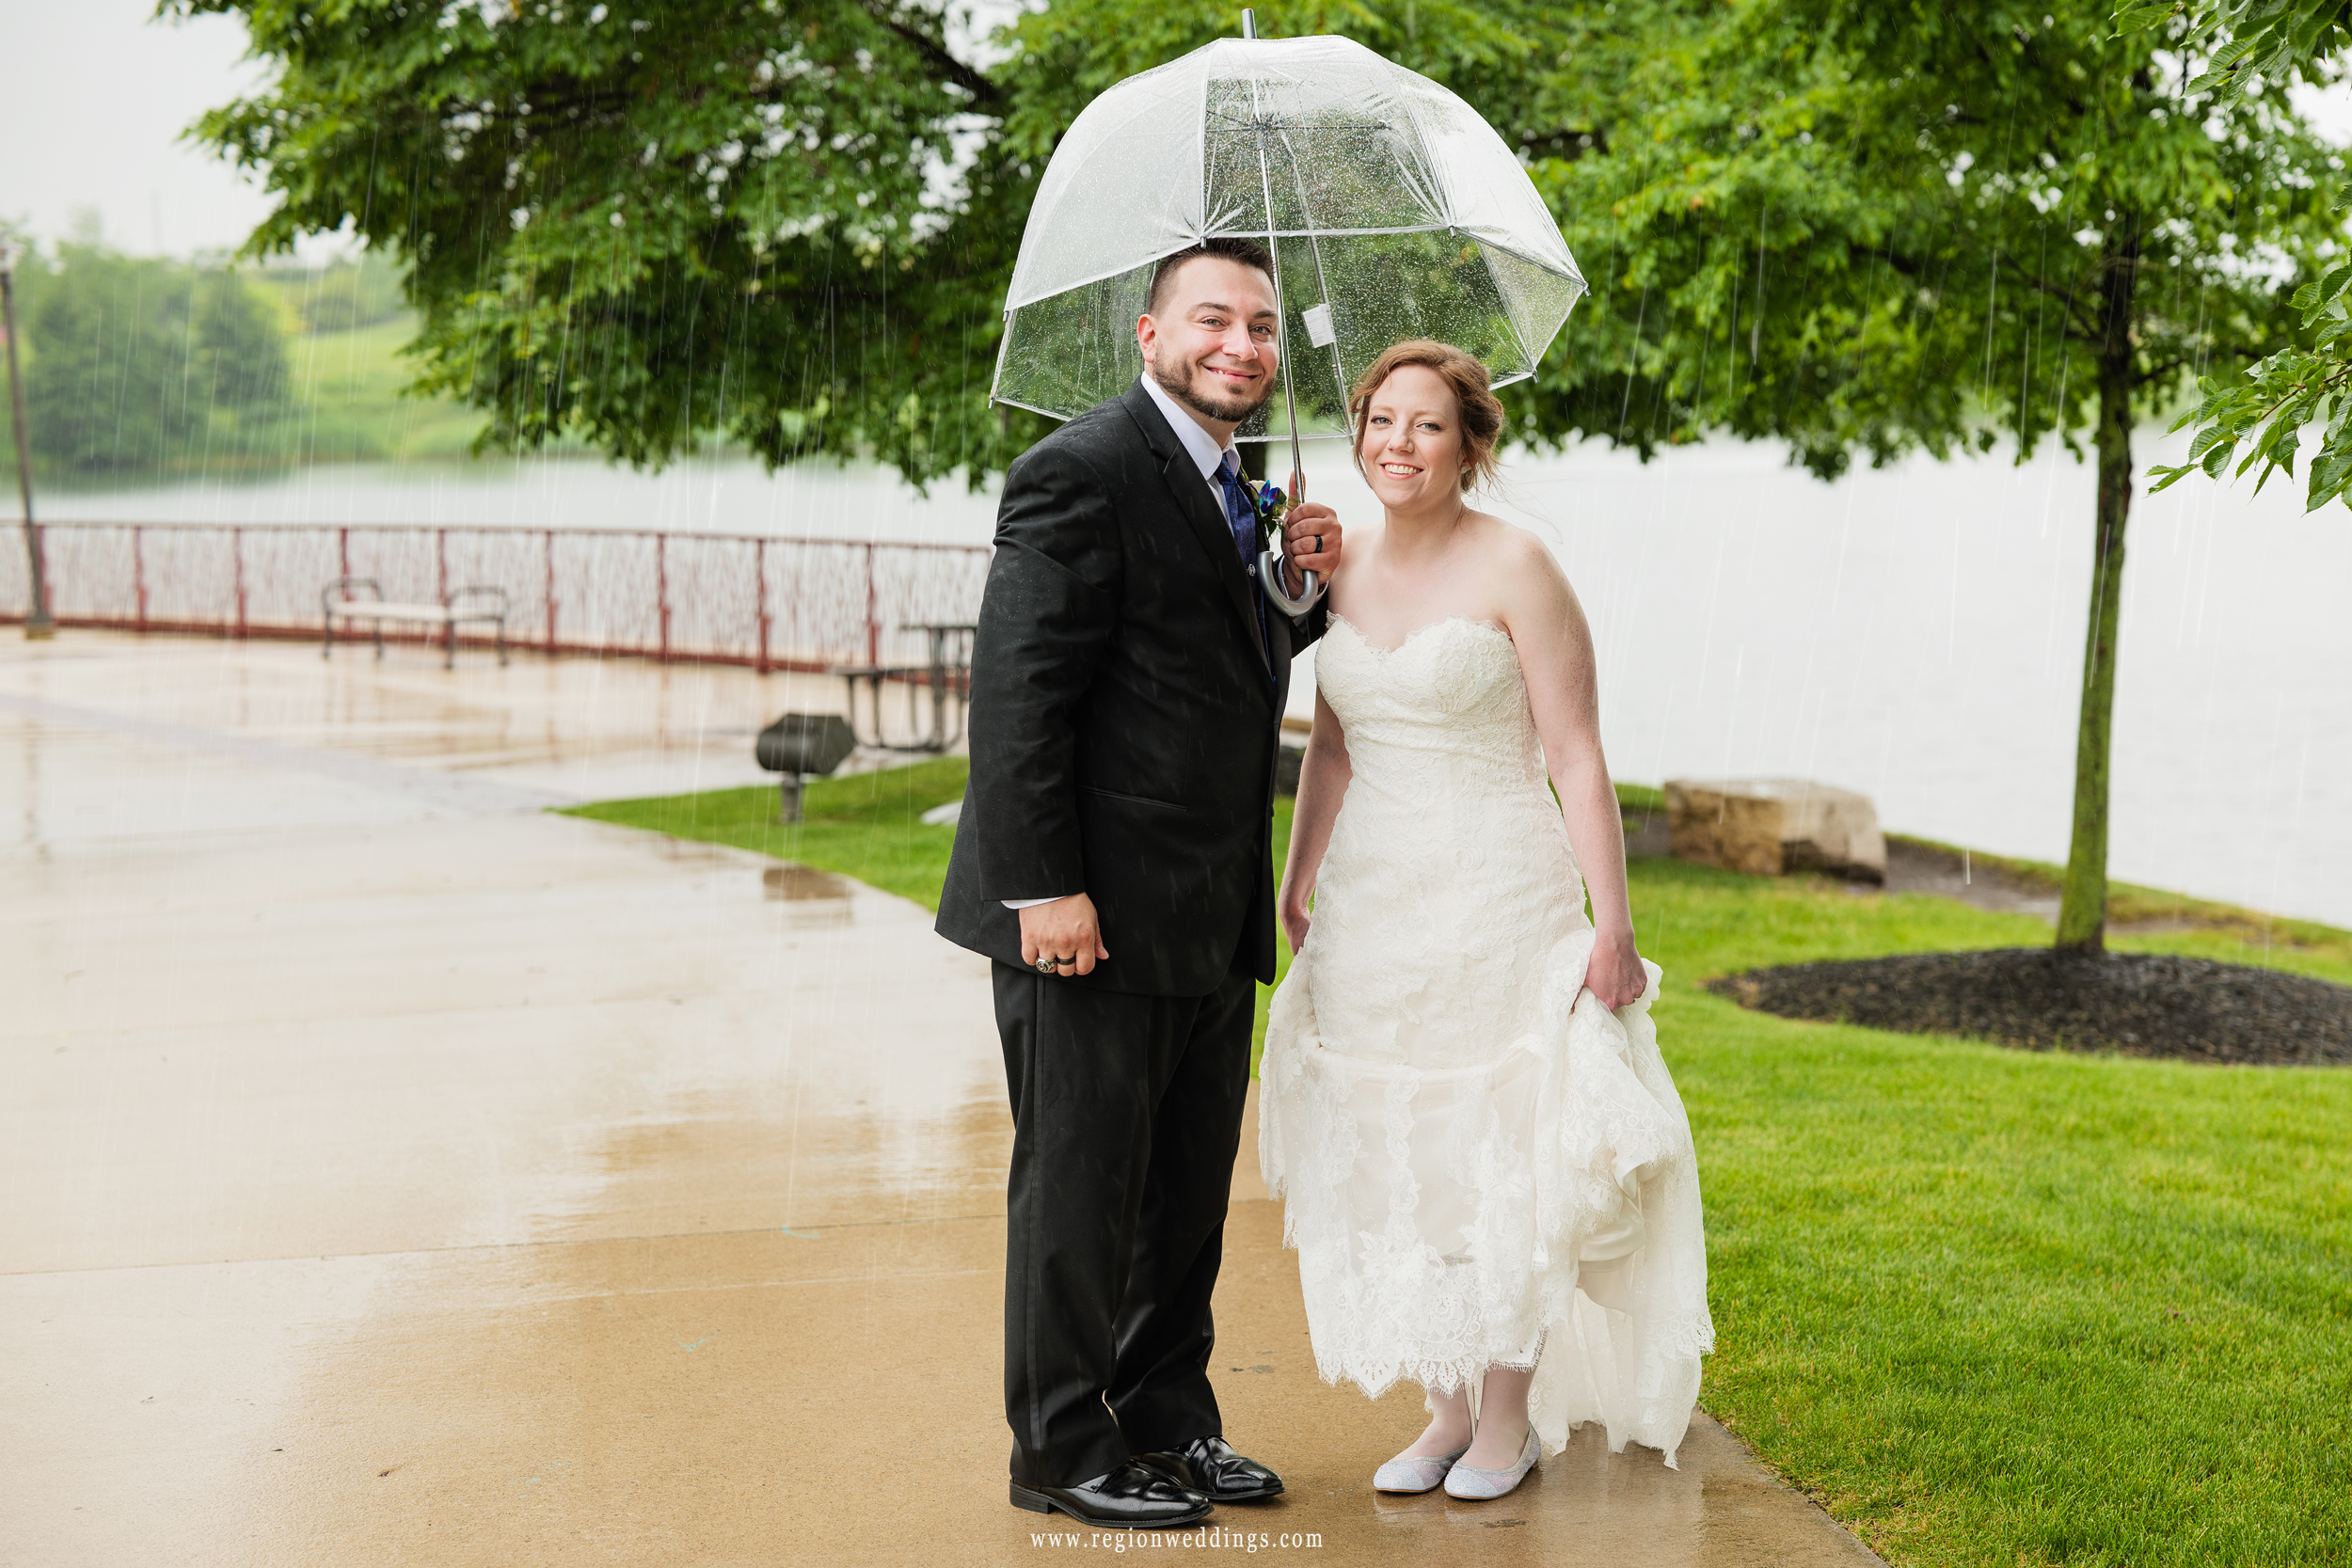 Newlyweds out in the summer rain at Centennial Park in Munster, Indiana.